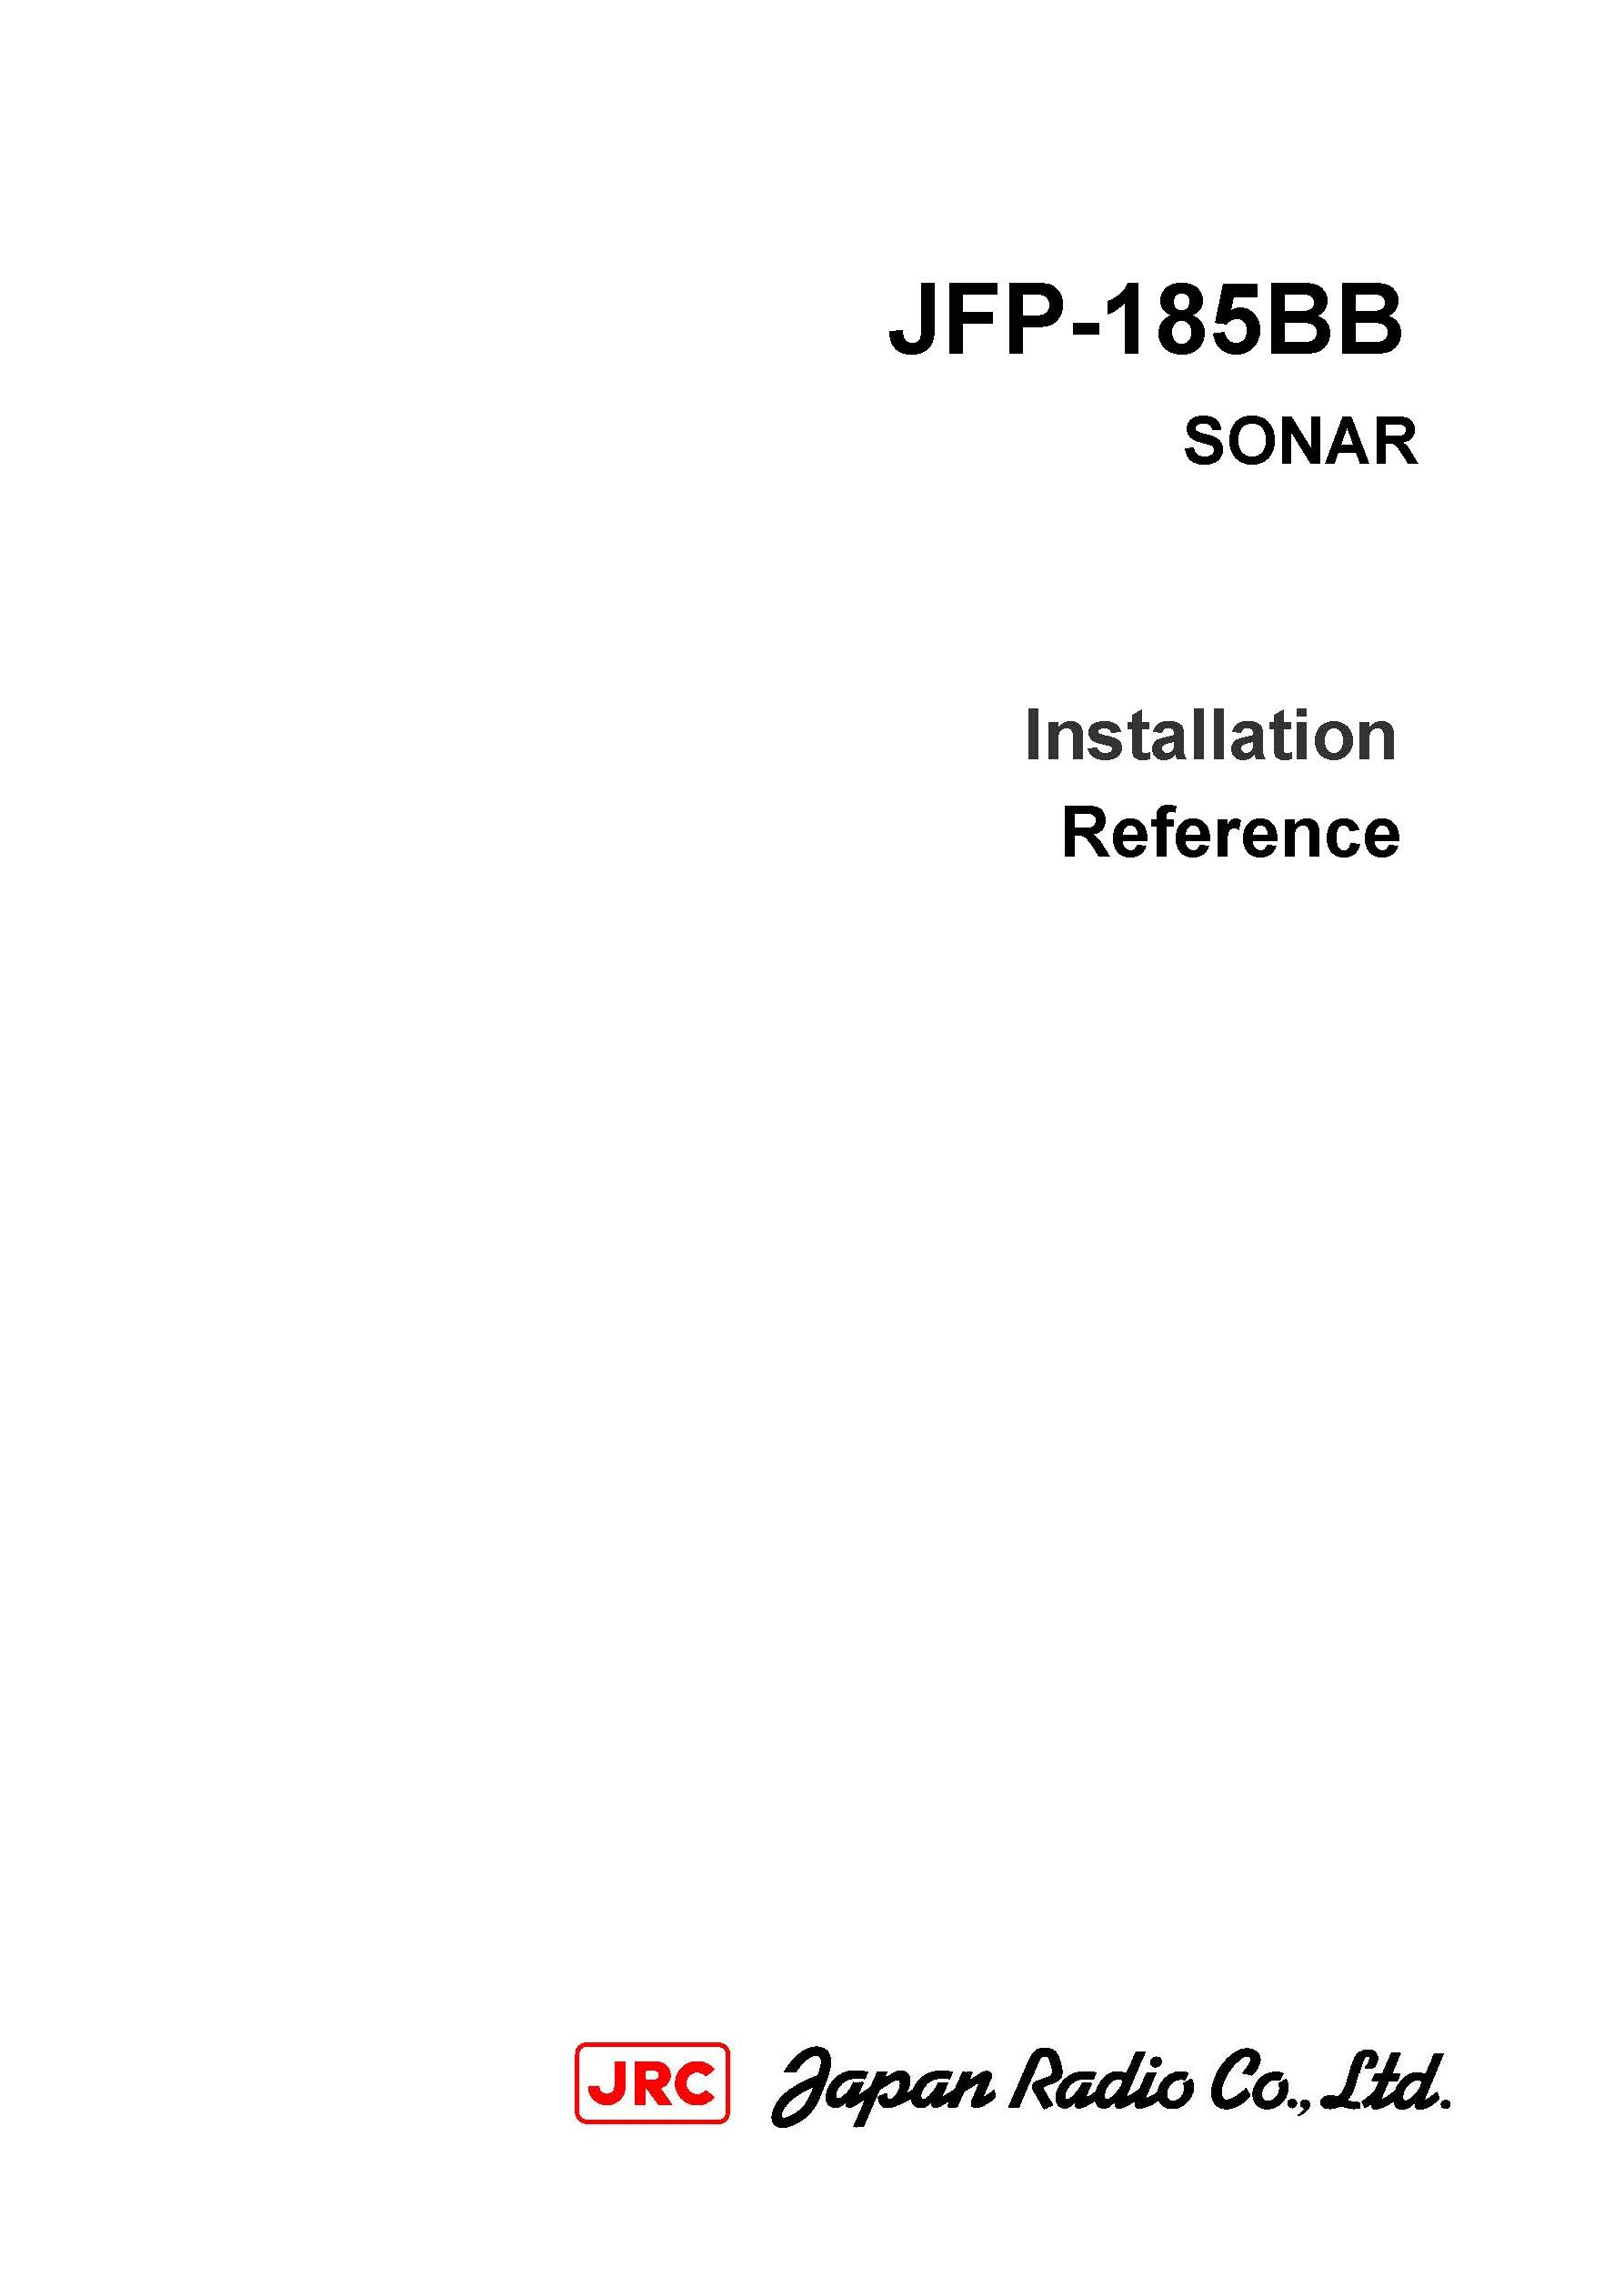 JFP 185BB Installation manual